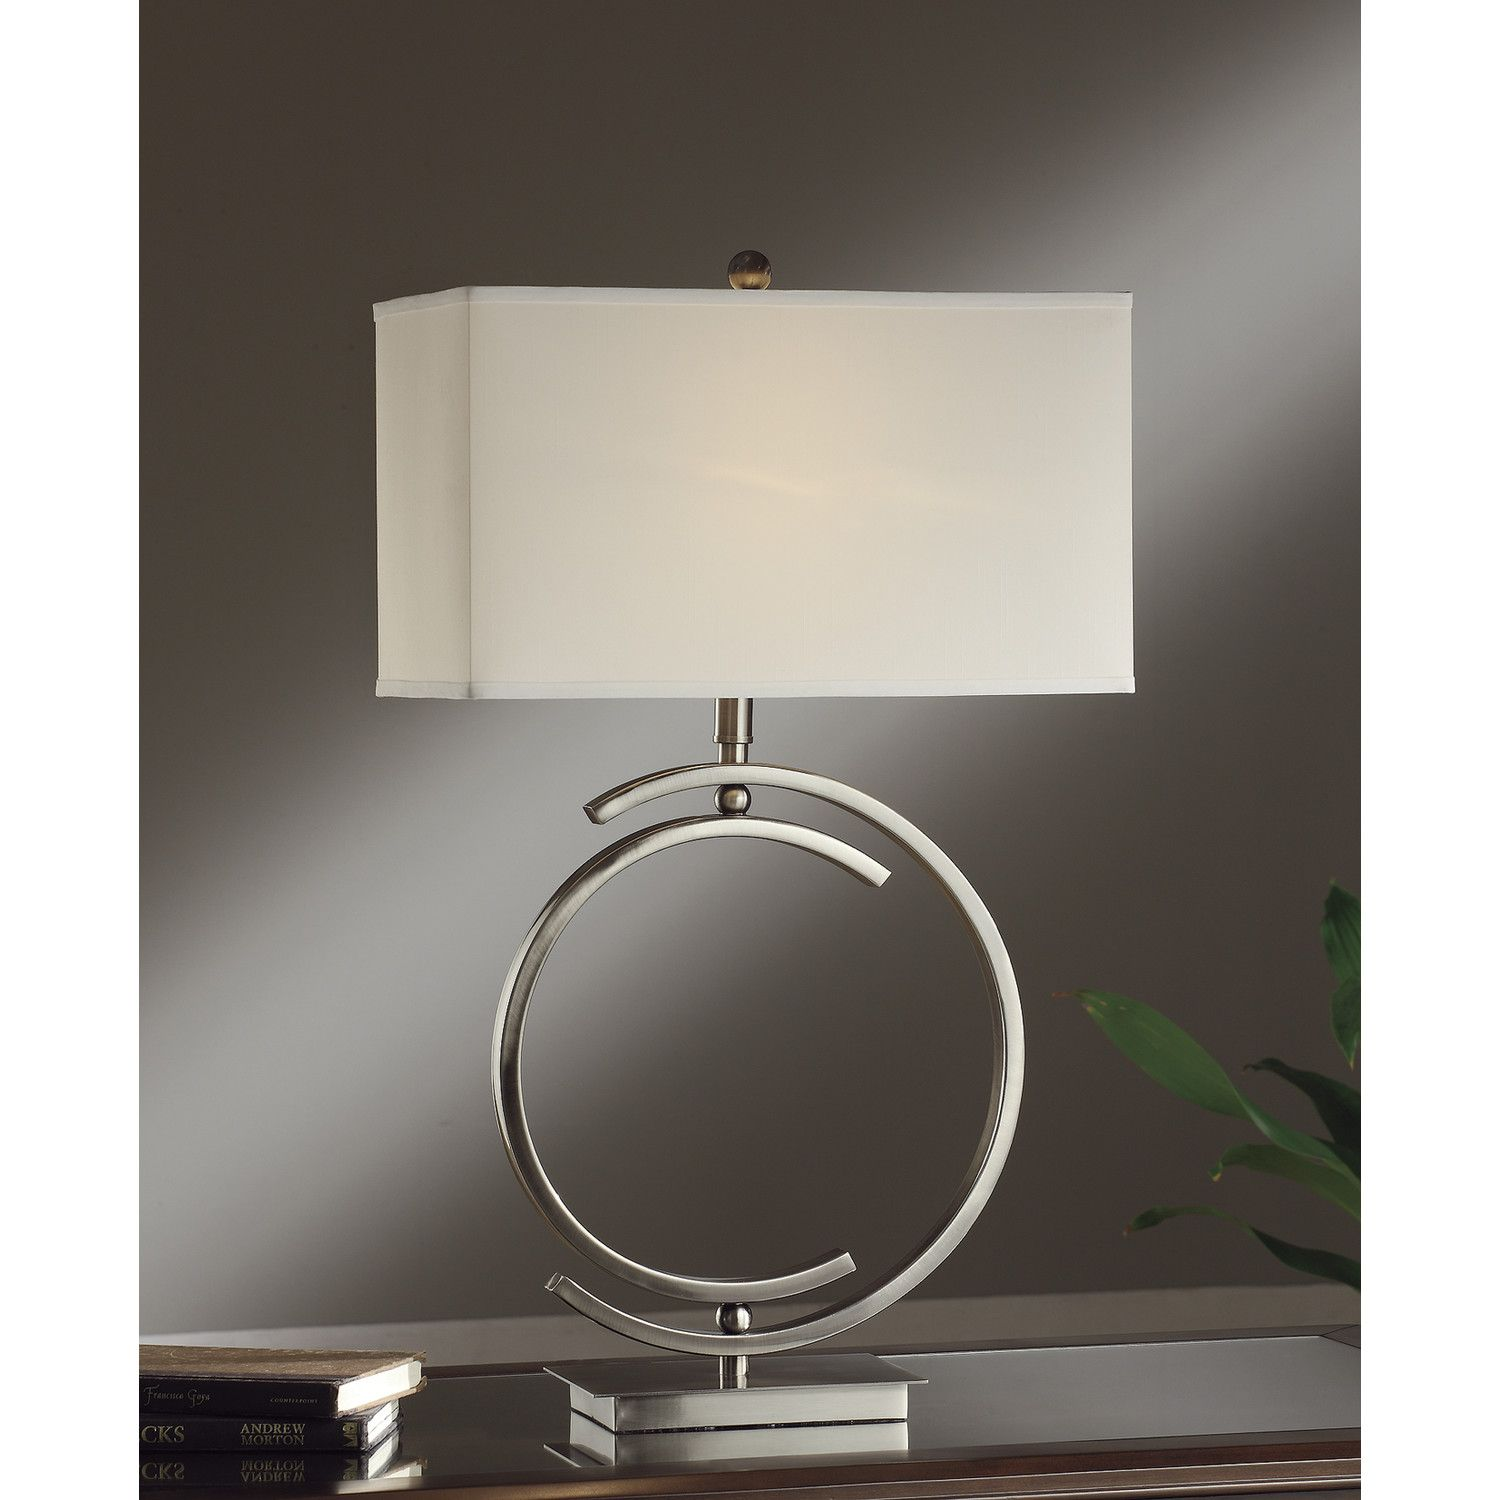 Crestview collection knox 1 light 31 h table lamp with crestview collection knox 1 light 31 h table lamp with rectangular shade geotapseo Gallery